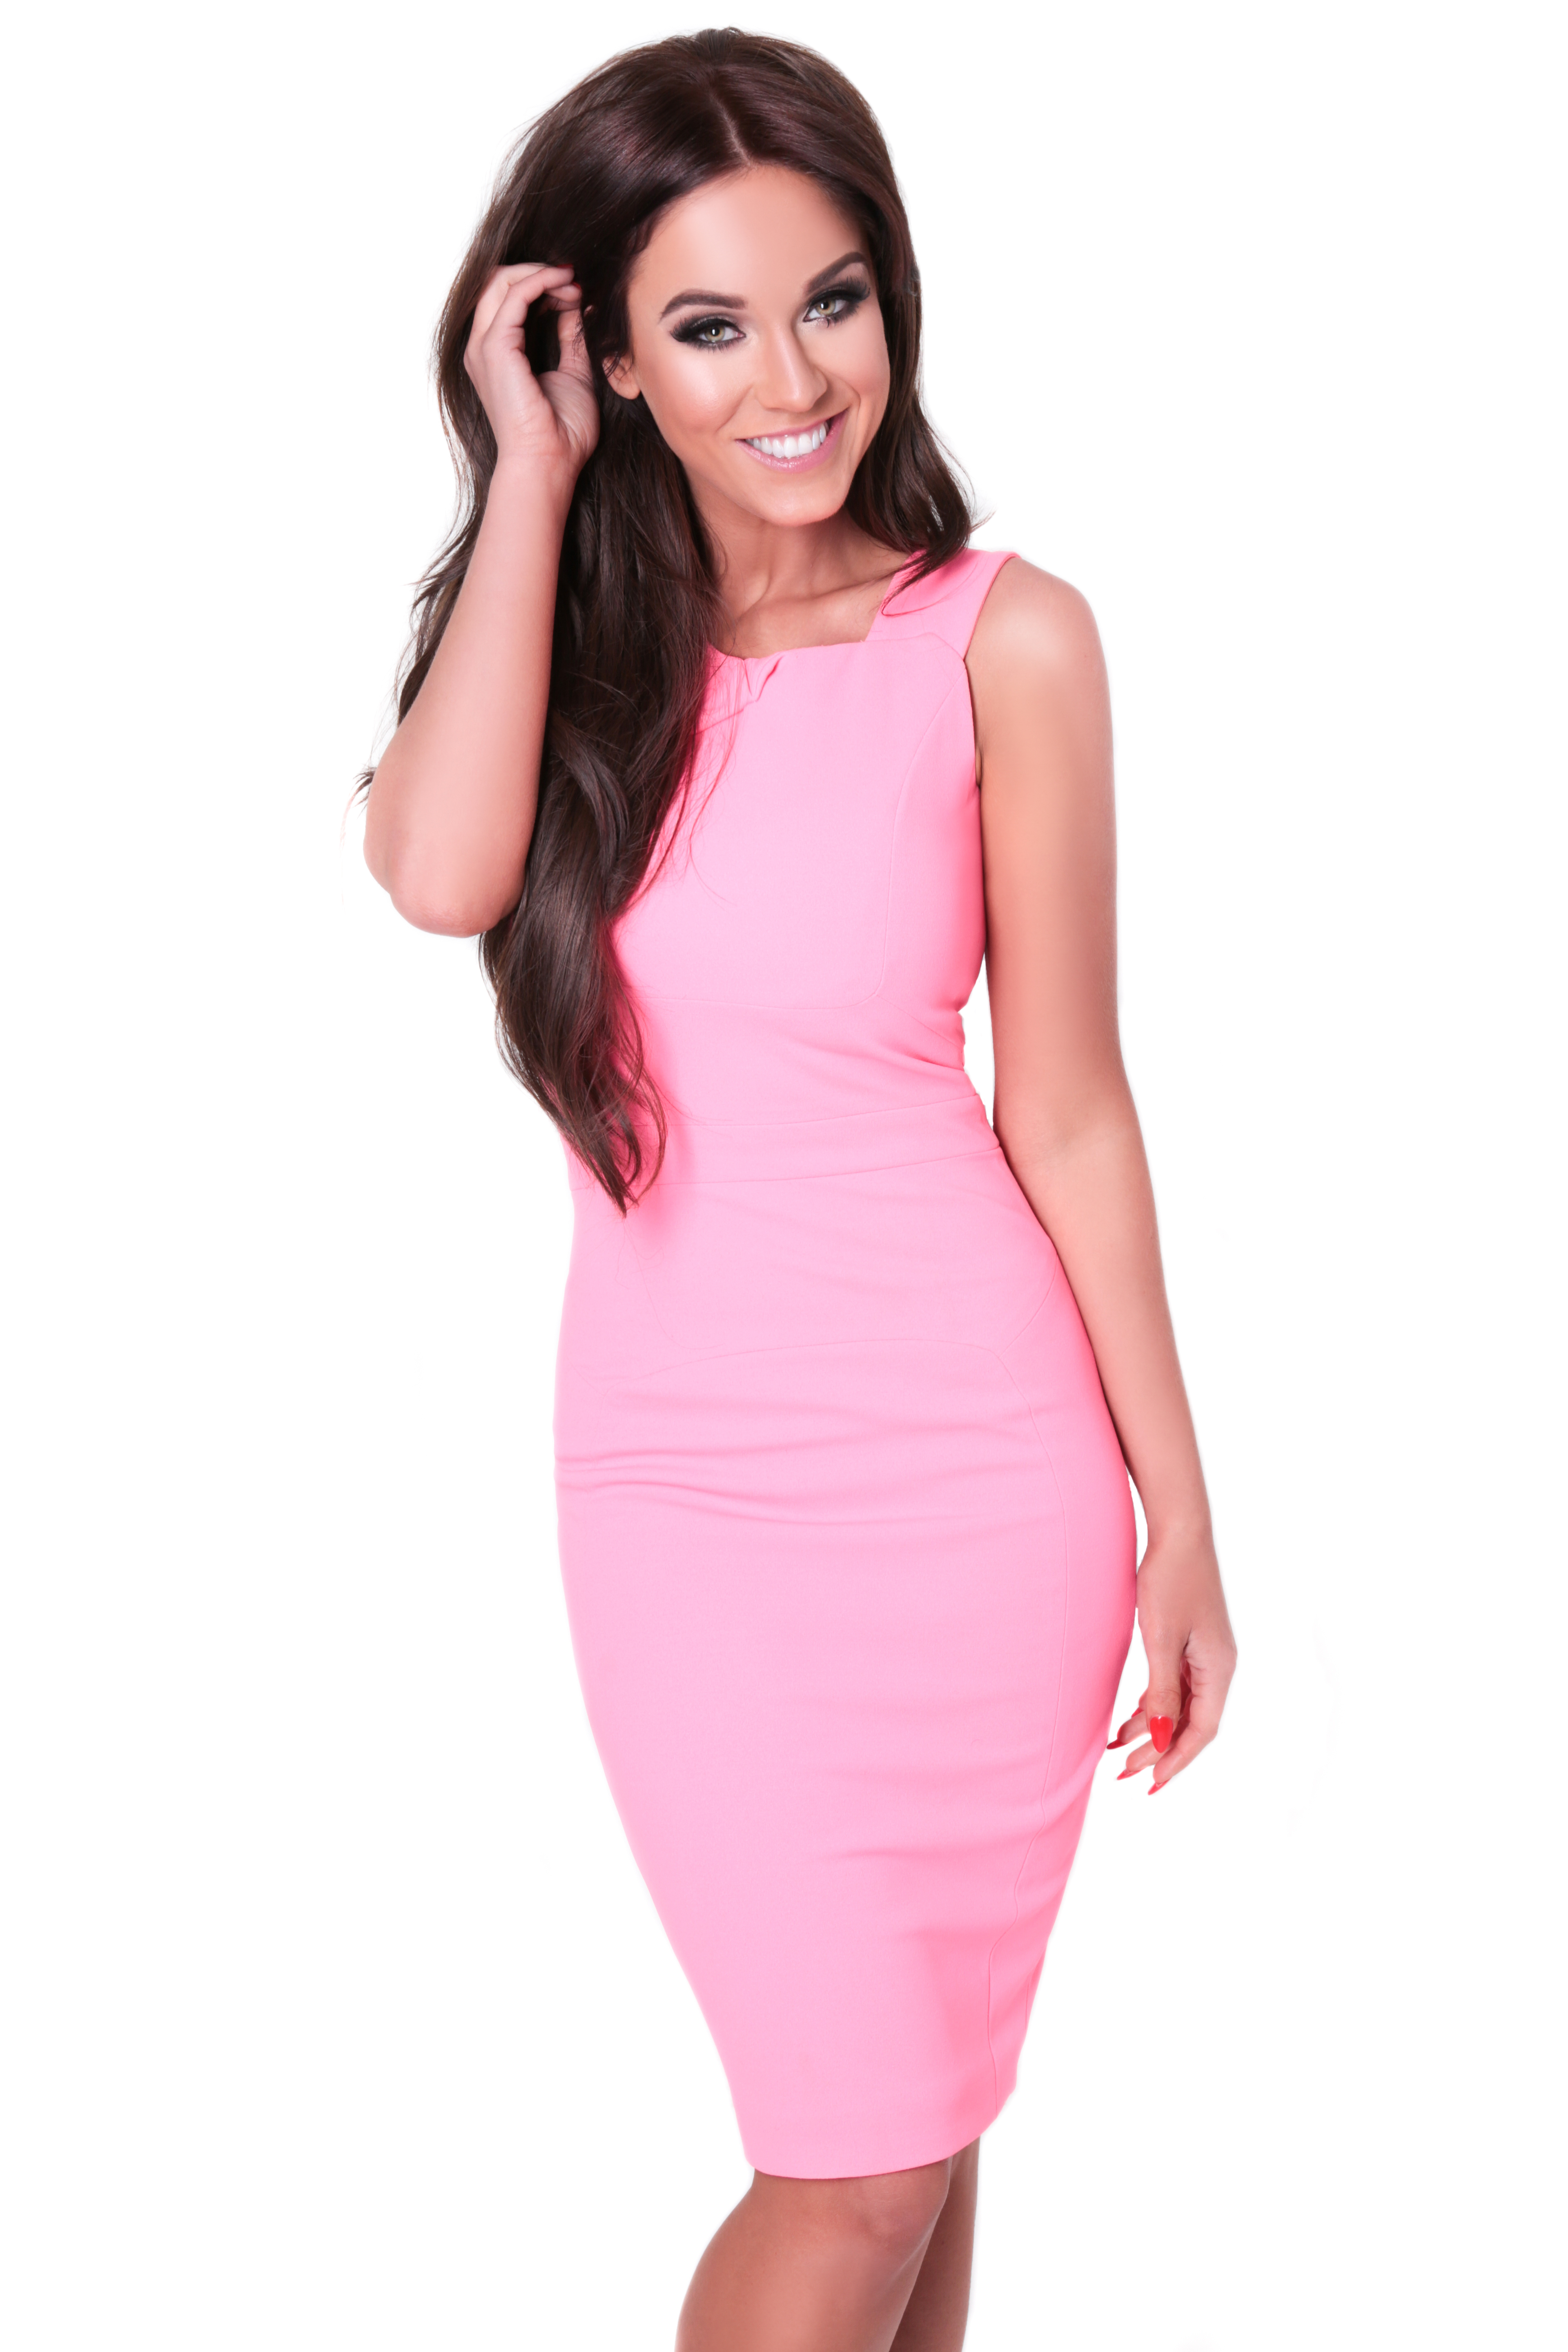 Vicky Pattison to Visit The Liberty - The Liberty Shopping Centre